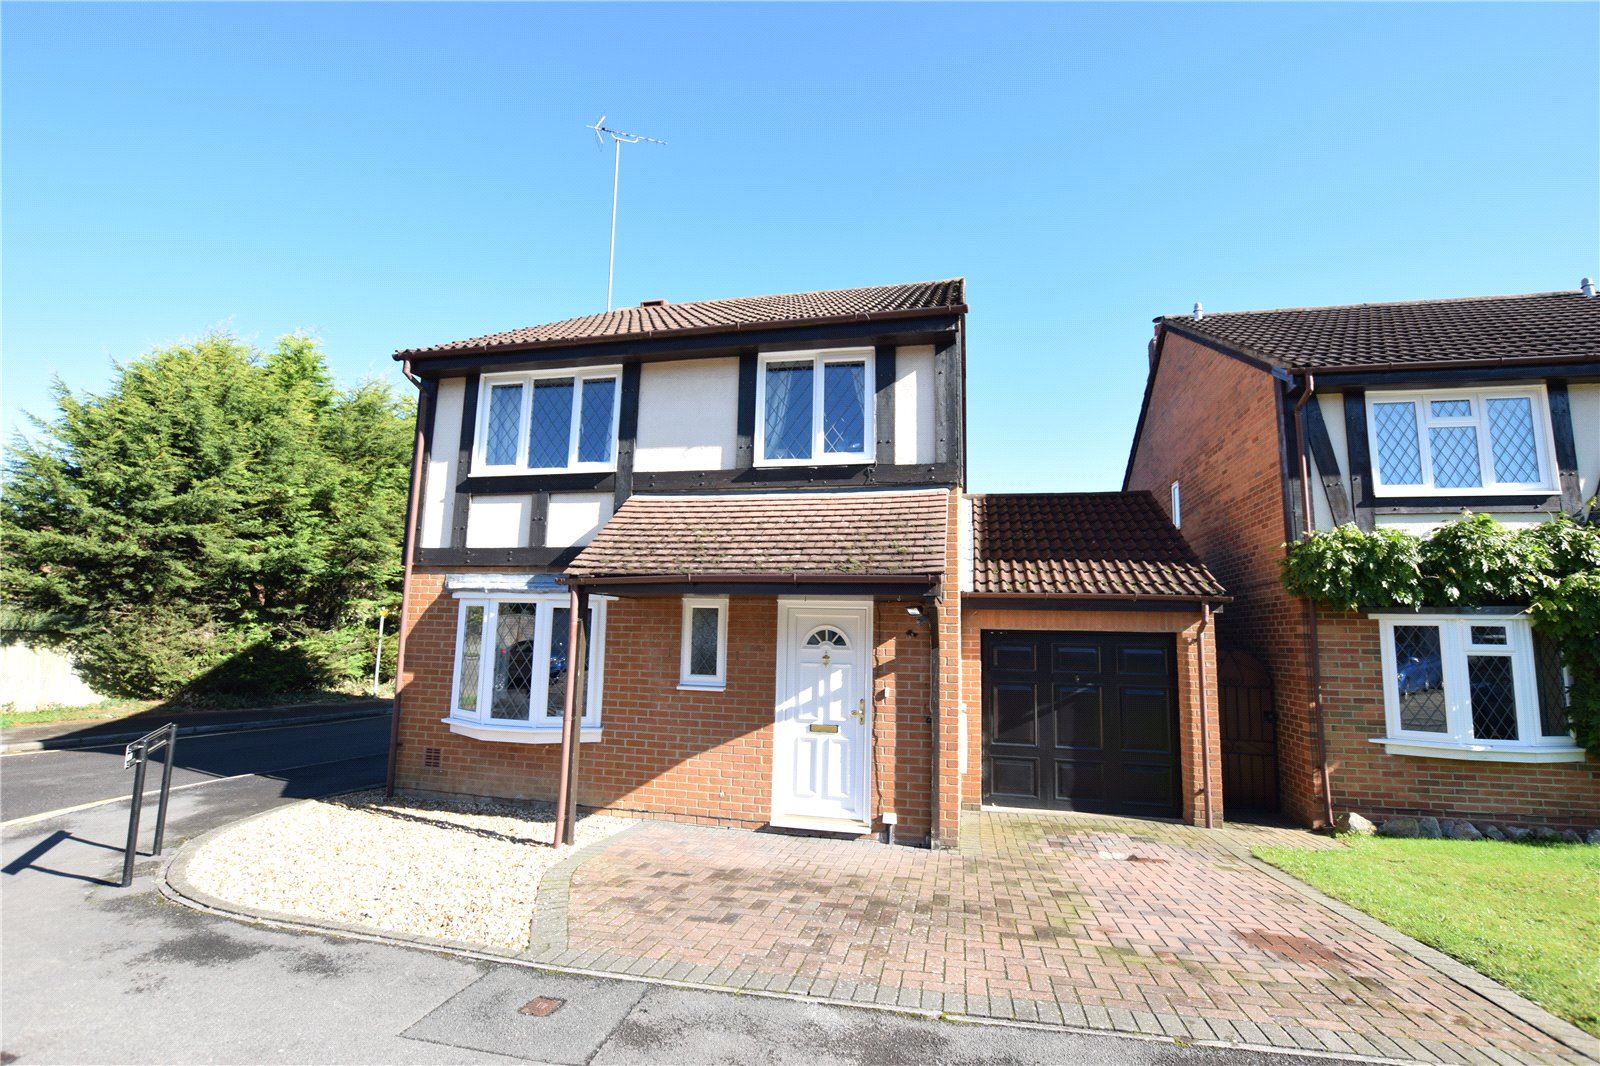 4 Bedrooms Detached House for sale in Leafield Copse, Bracknell, Berkshire, RG12